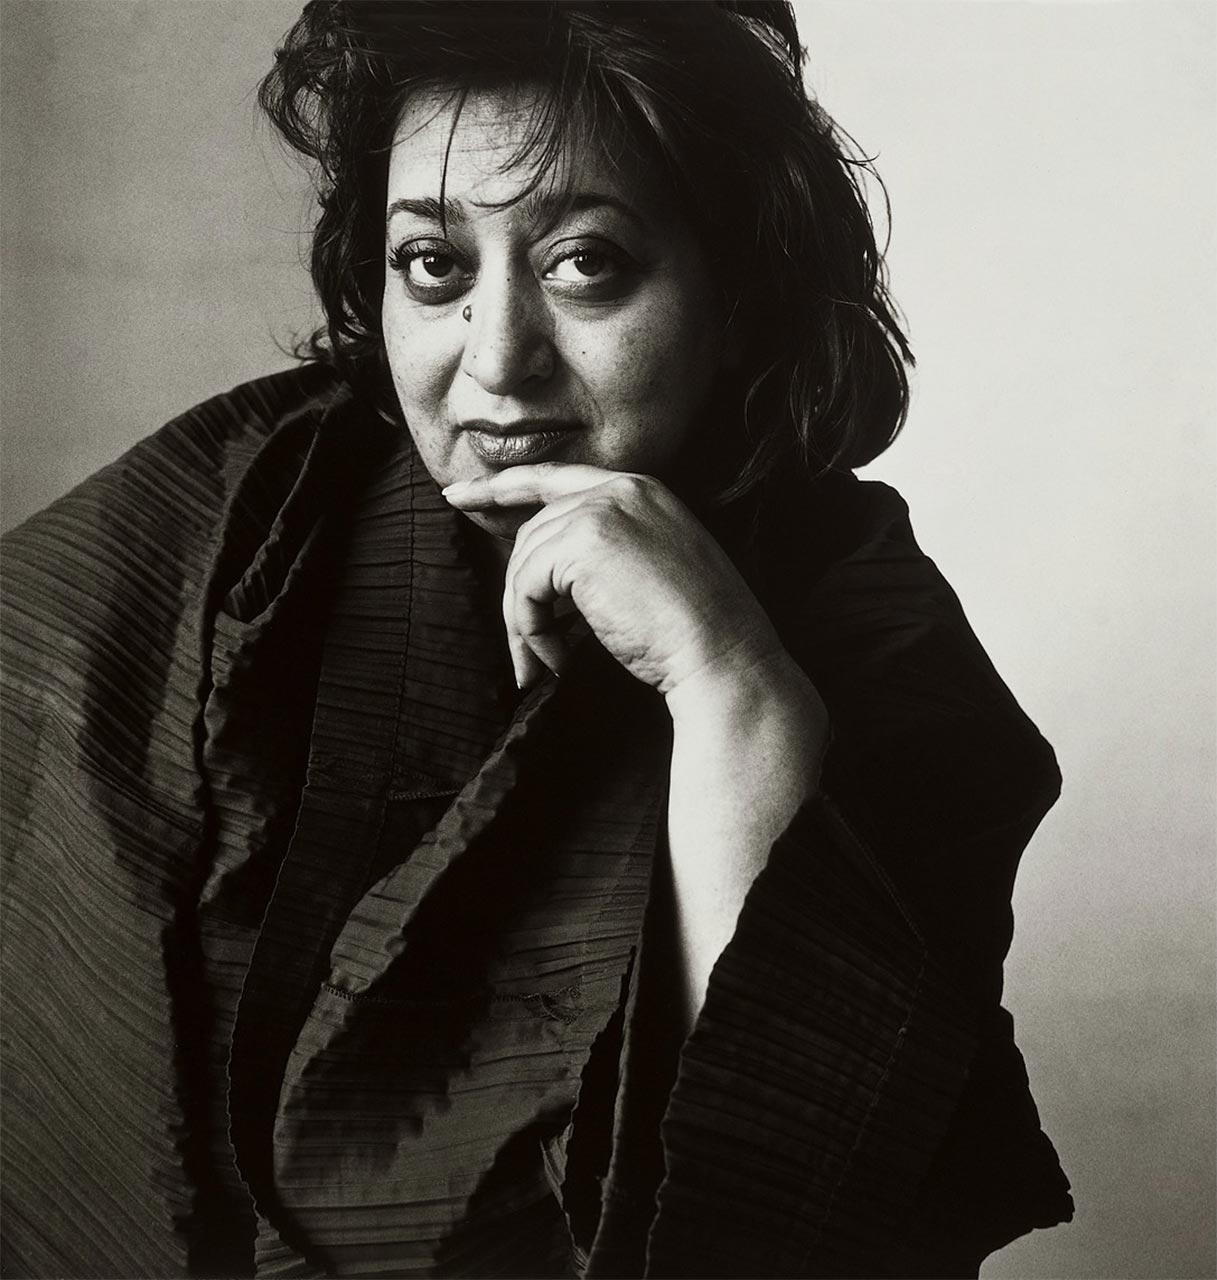 The architect and designer Zaha Hadid's portrait (1950-2016).